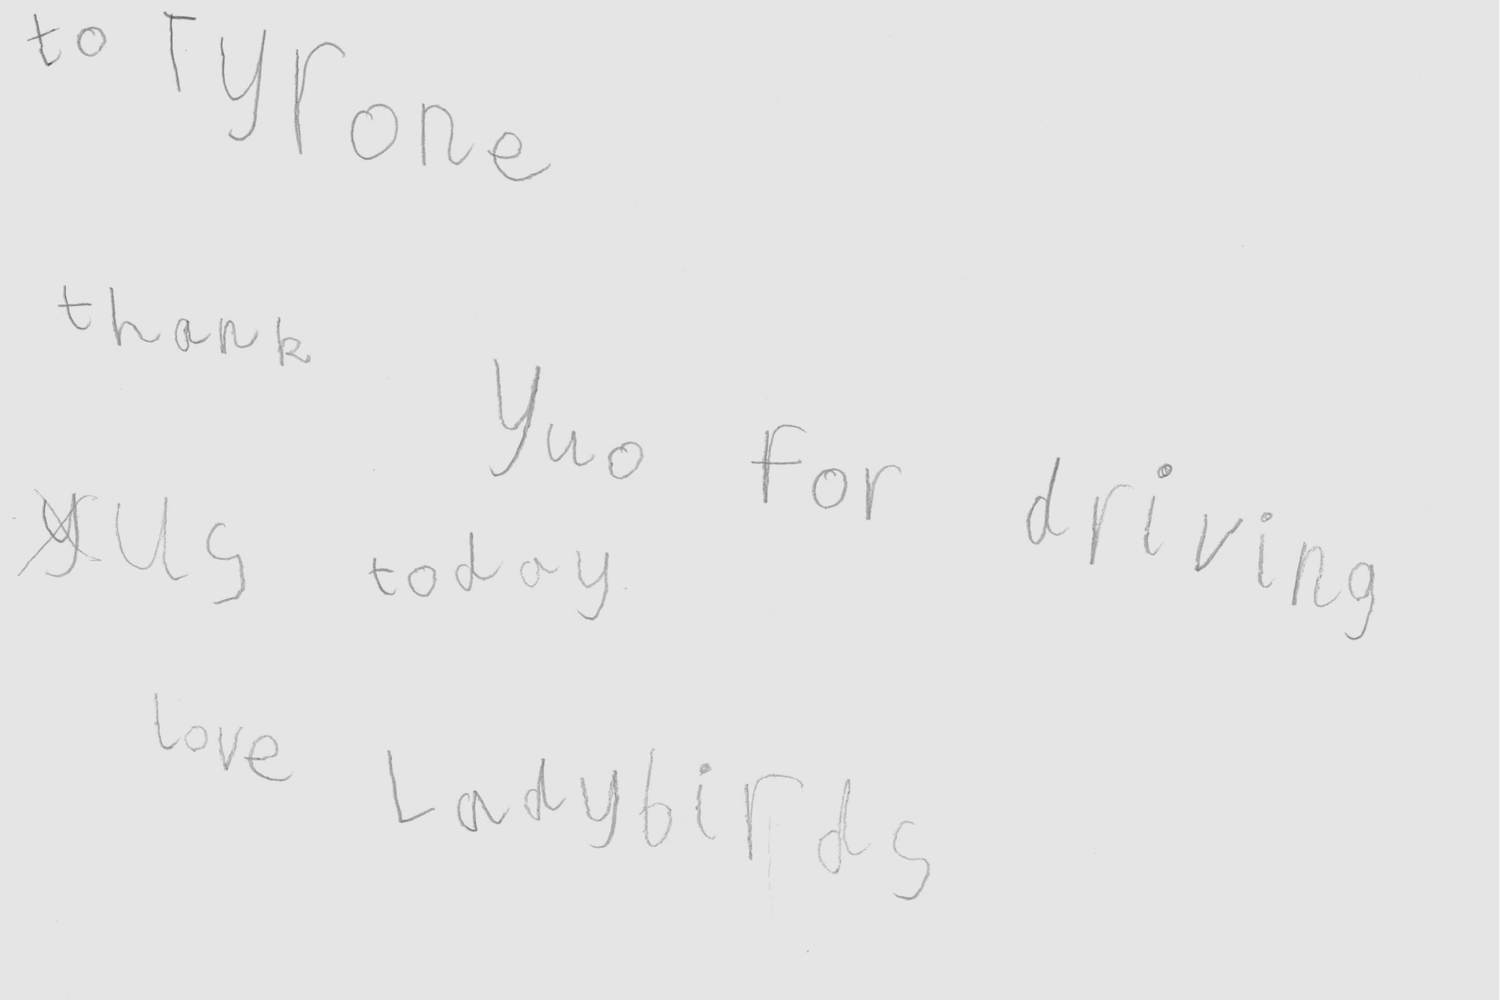 Customer feedback from young school children. It says 'To Tyrone, thank you for driving us today, love ladybirds.'